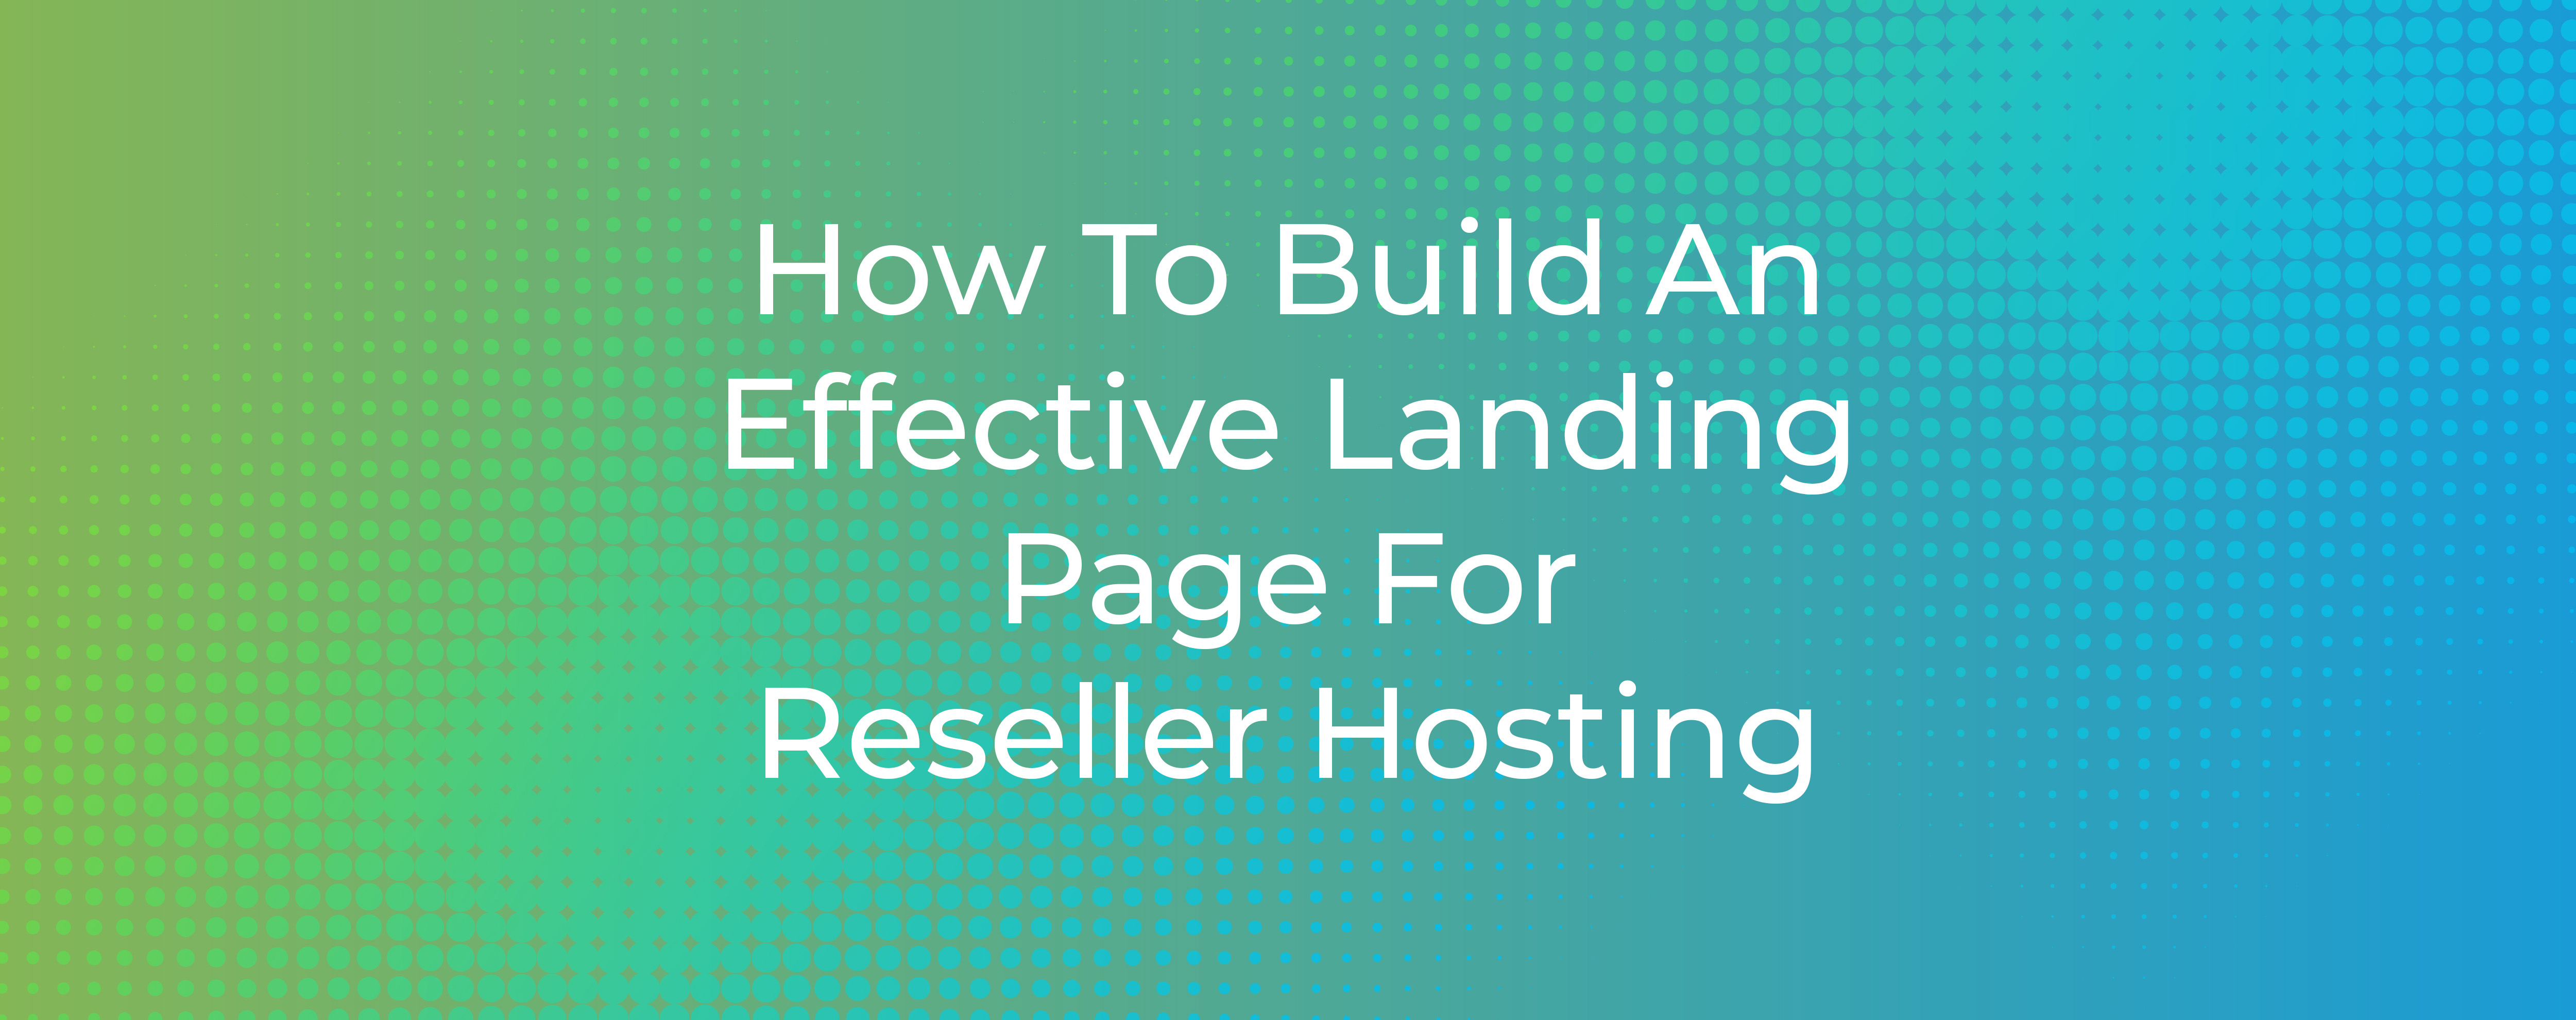 How To Build An Effective Landing Page Reseller Hosting